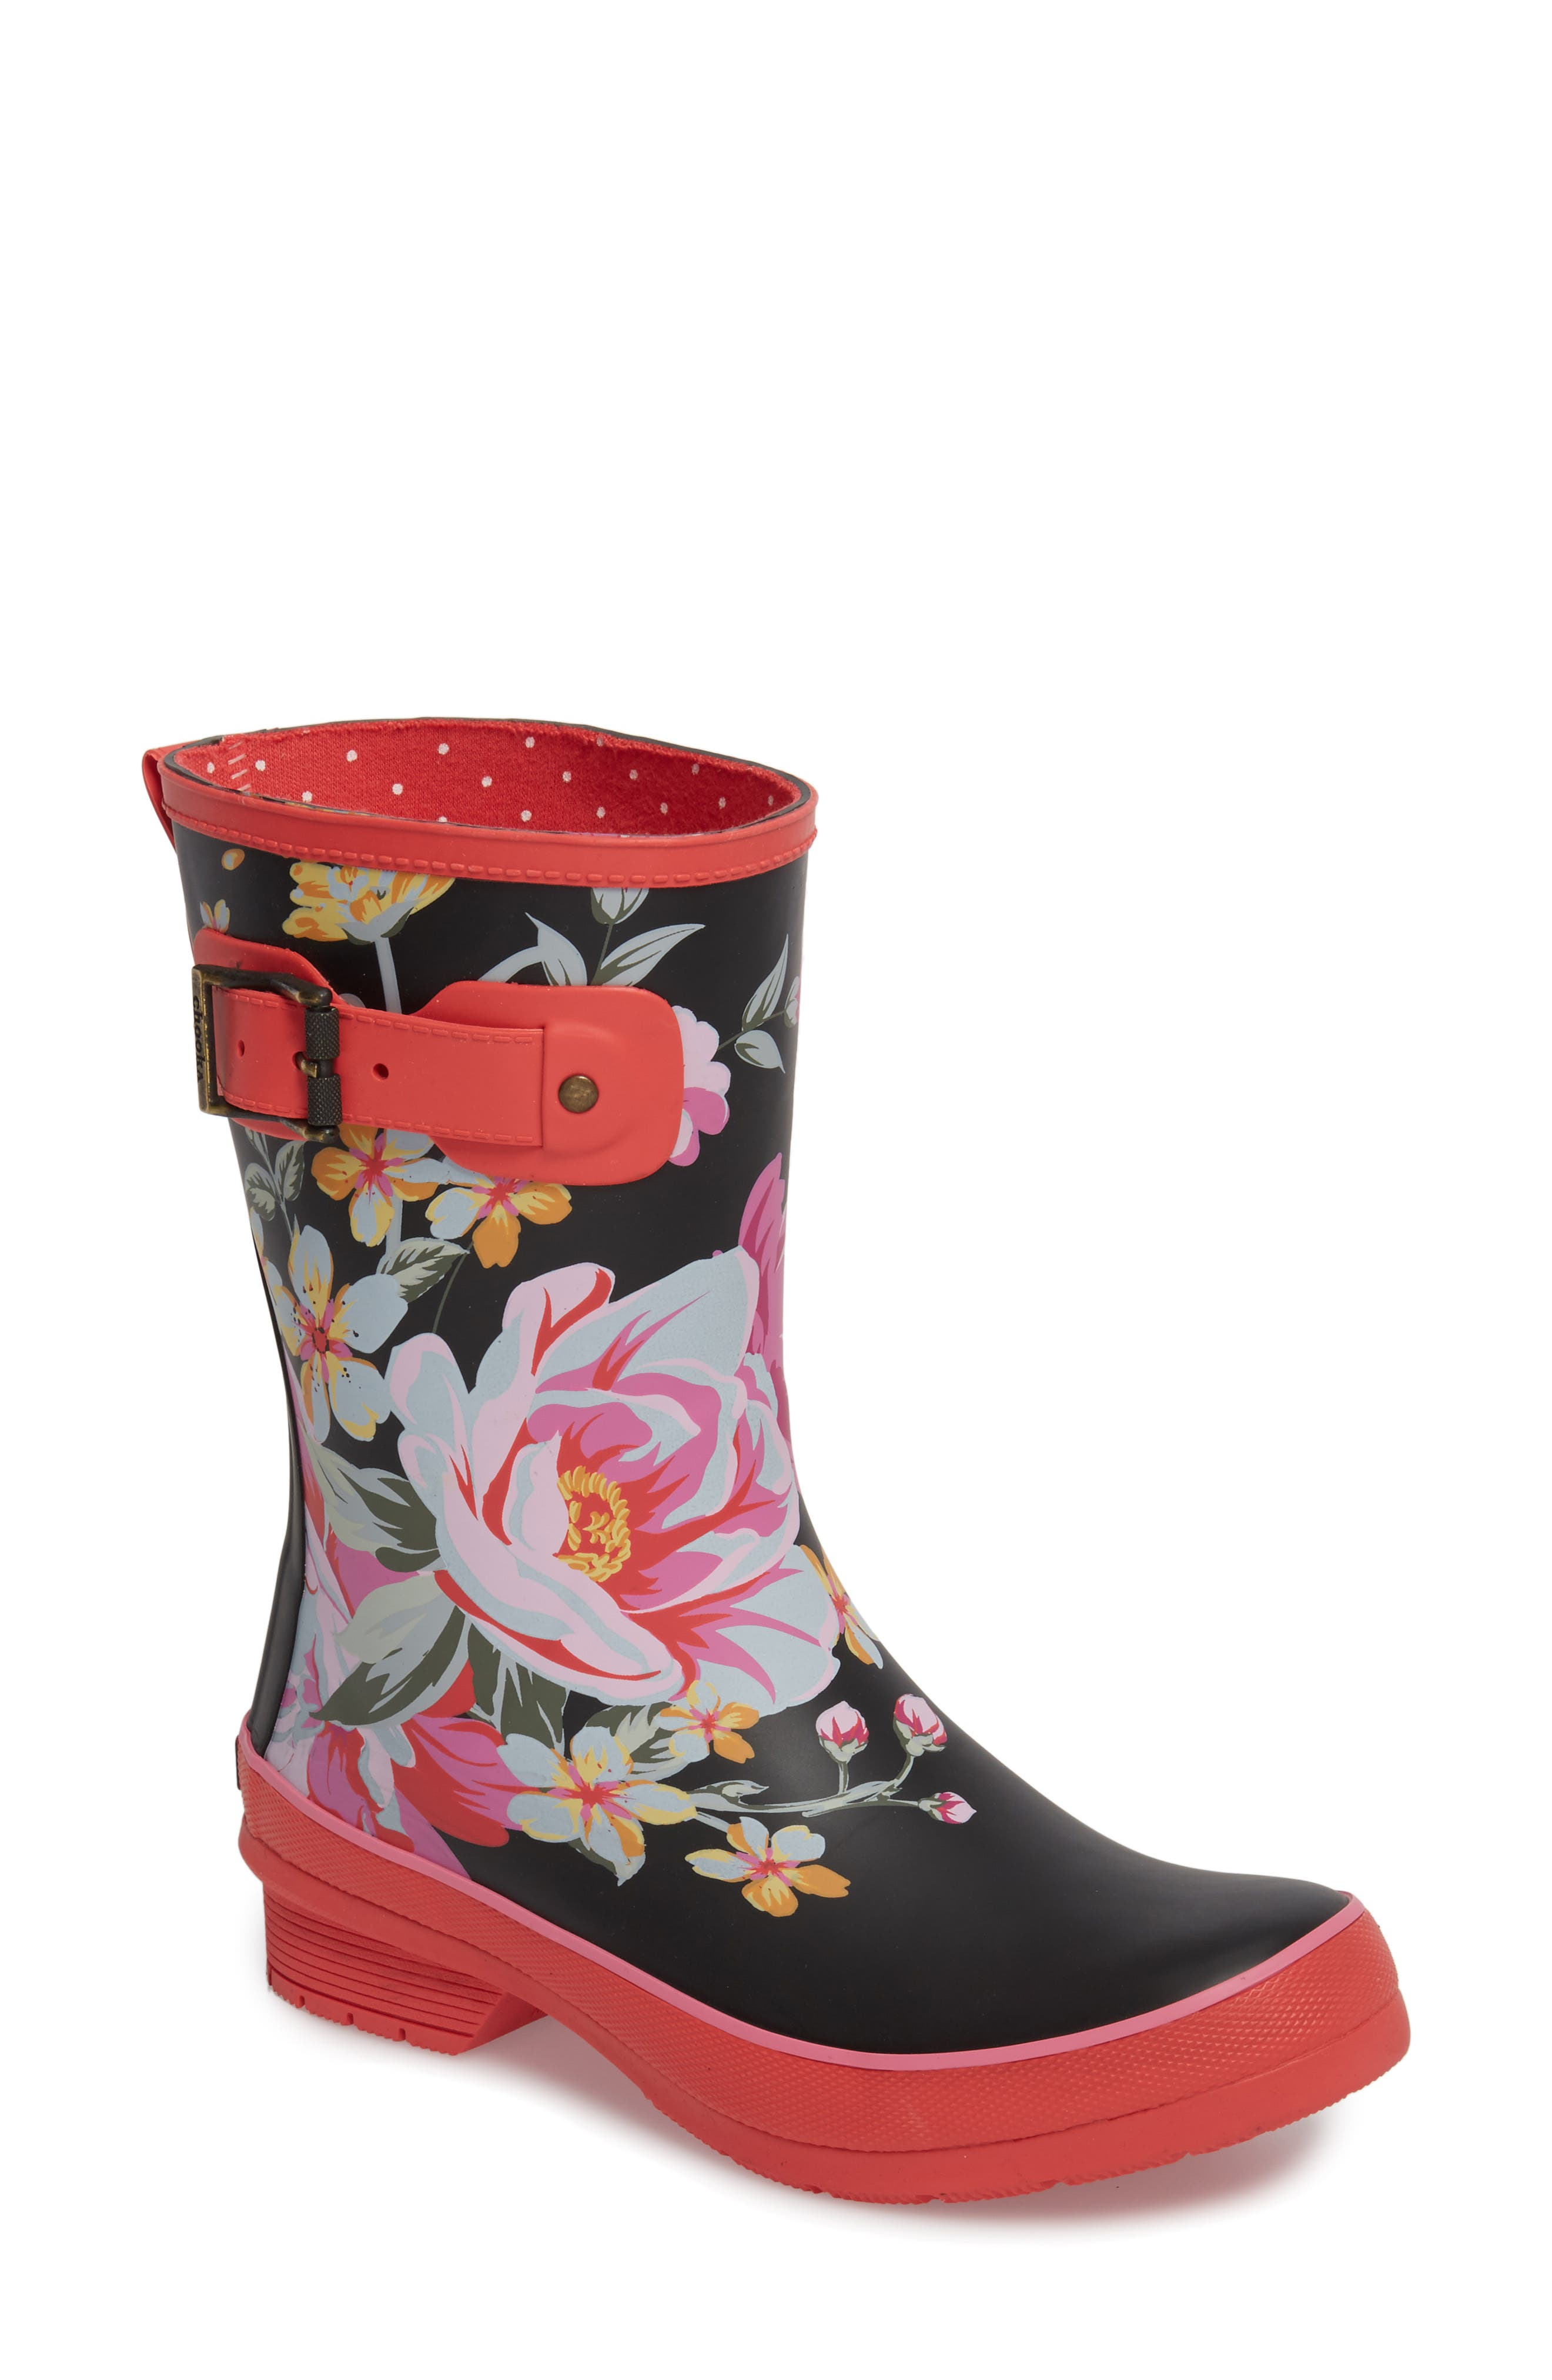 Hilde Mid Rain Boot,                             Main thumbnail 1, color,                             Fuchsia